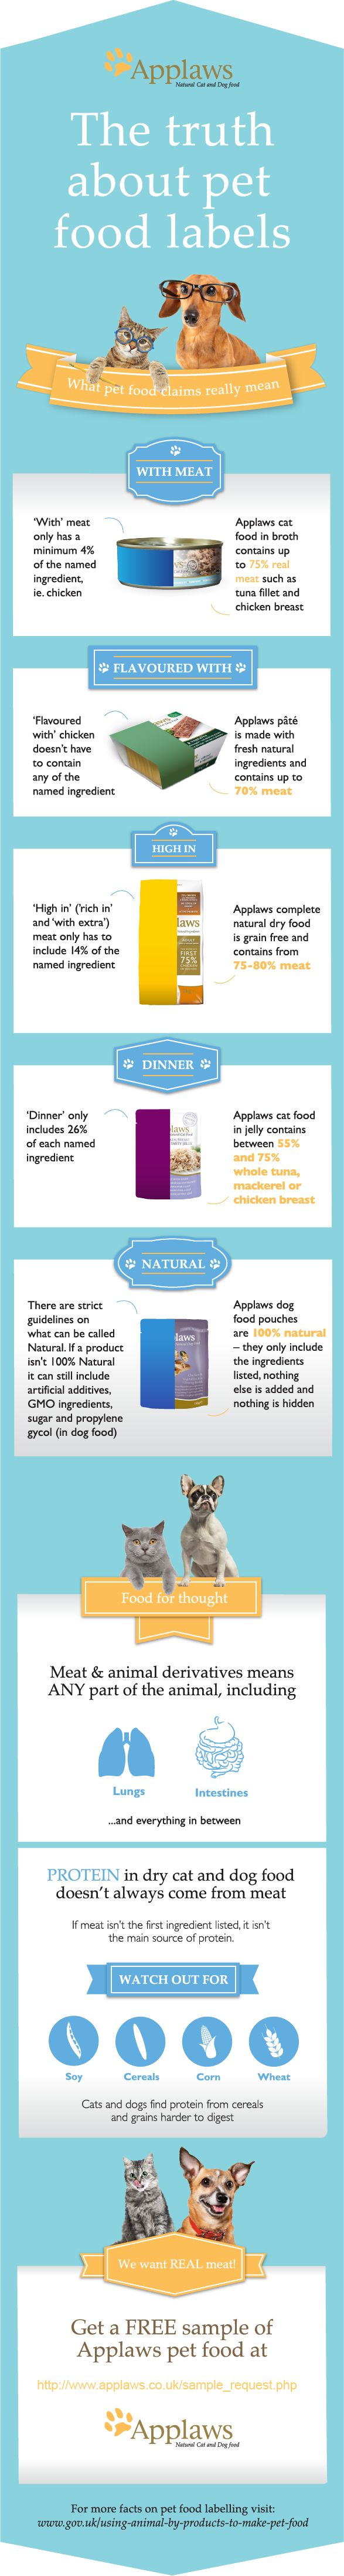 Applaws: The truth about pet food labels | A Spaniel's Tail